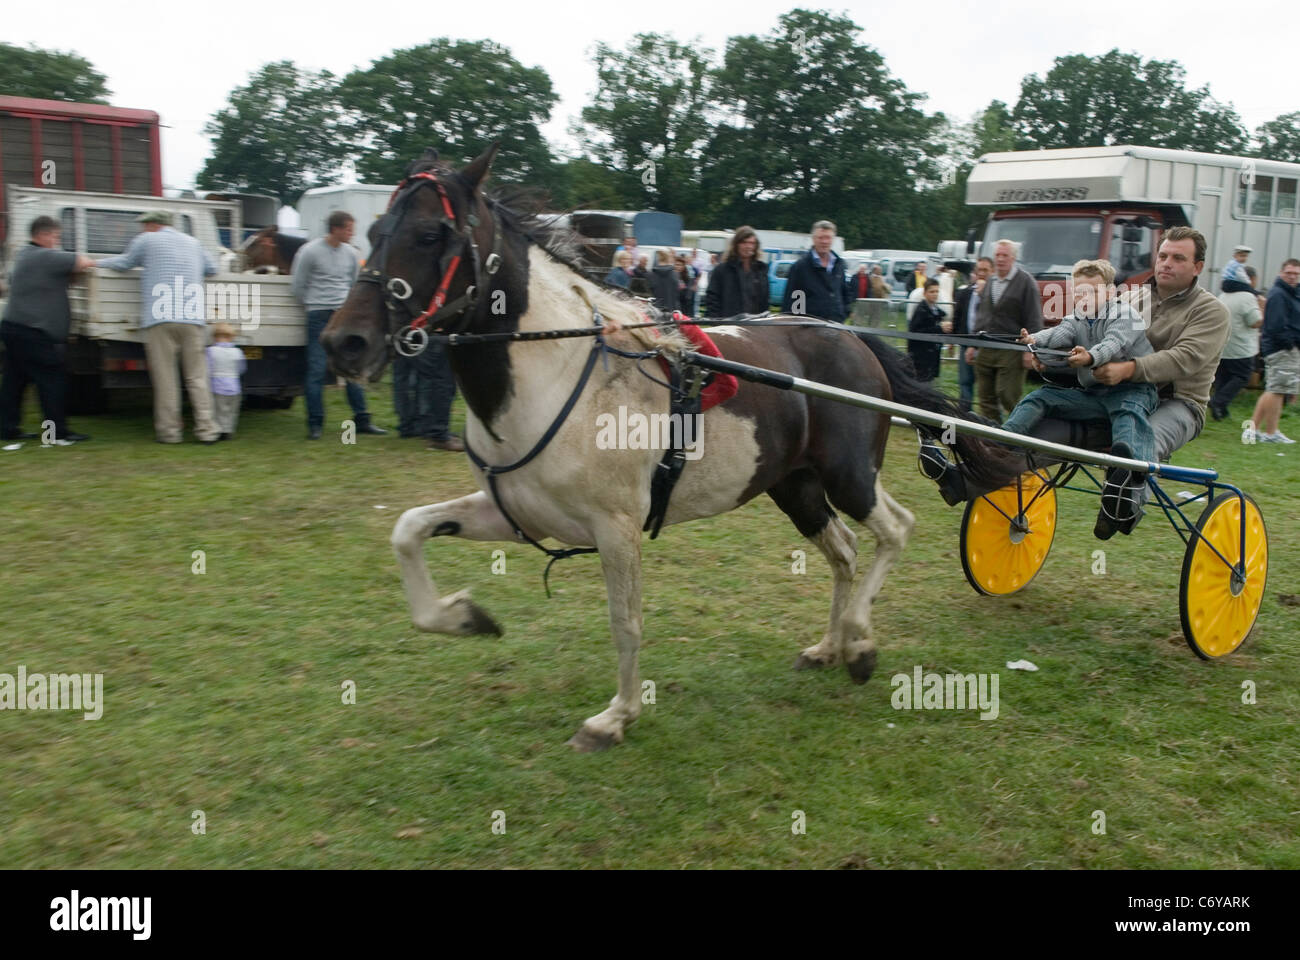 Barnet Gypsy Horse Fair Hertfordshire UK. Father and son showing a trotting pony thats for sale. - Stock Image